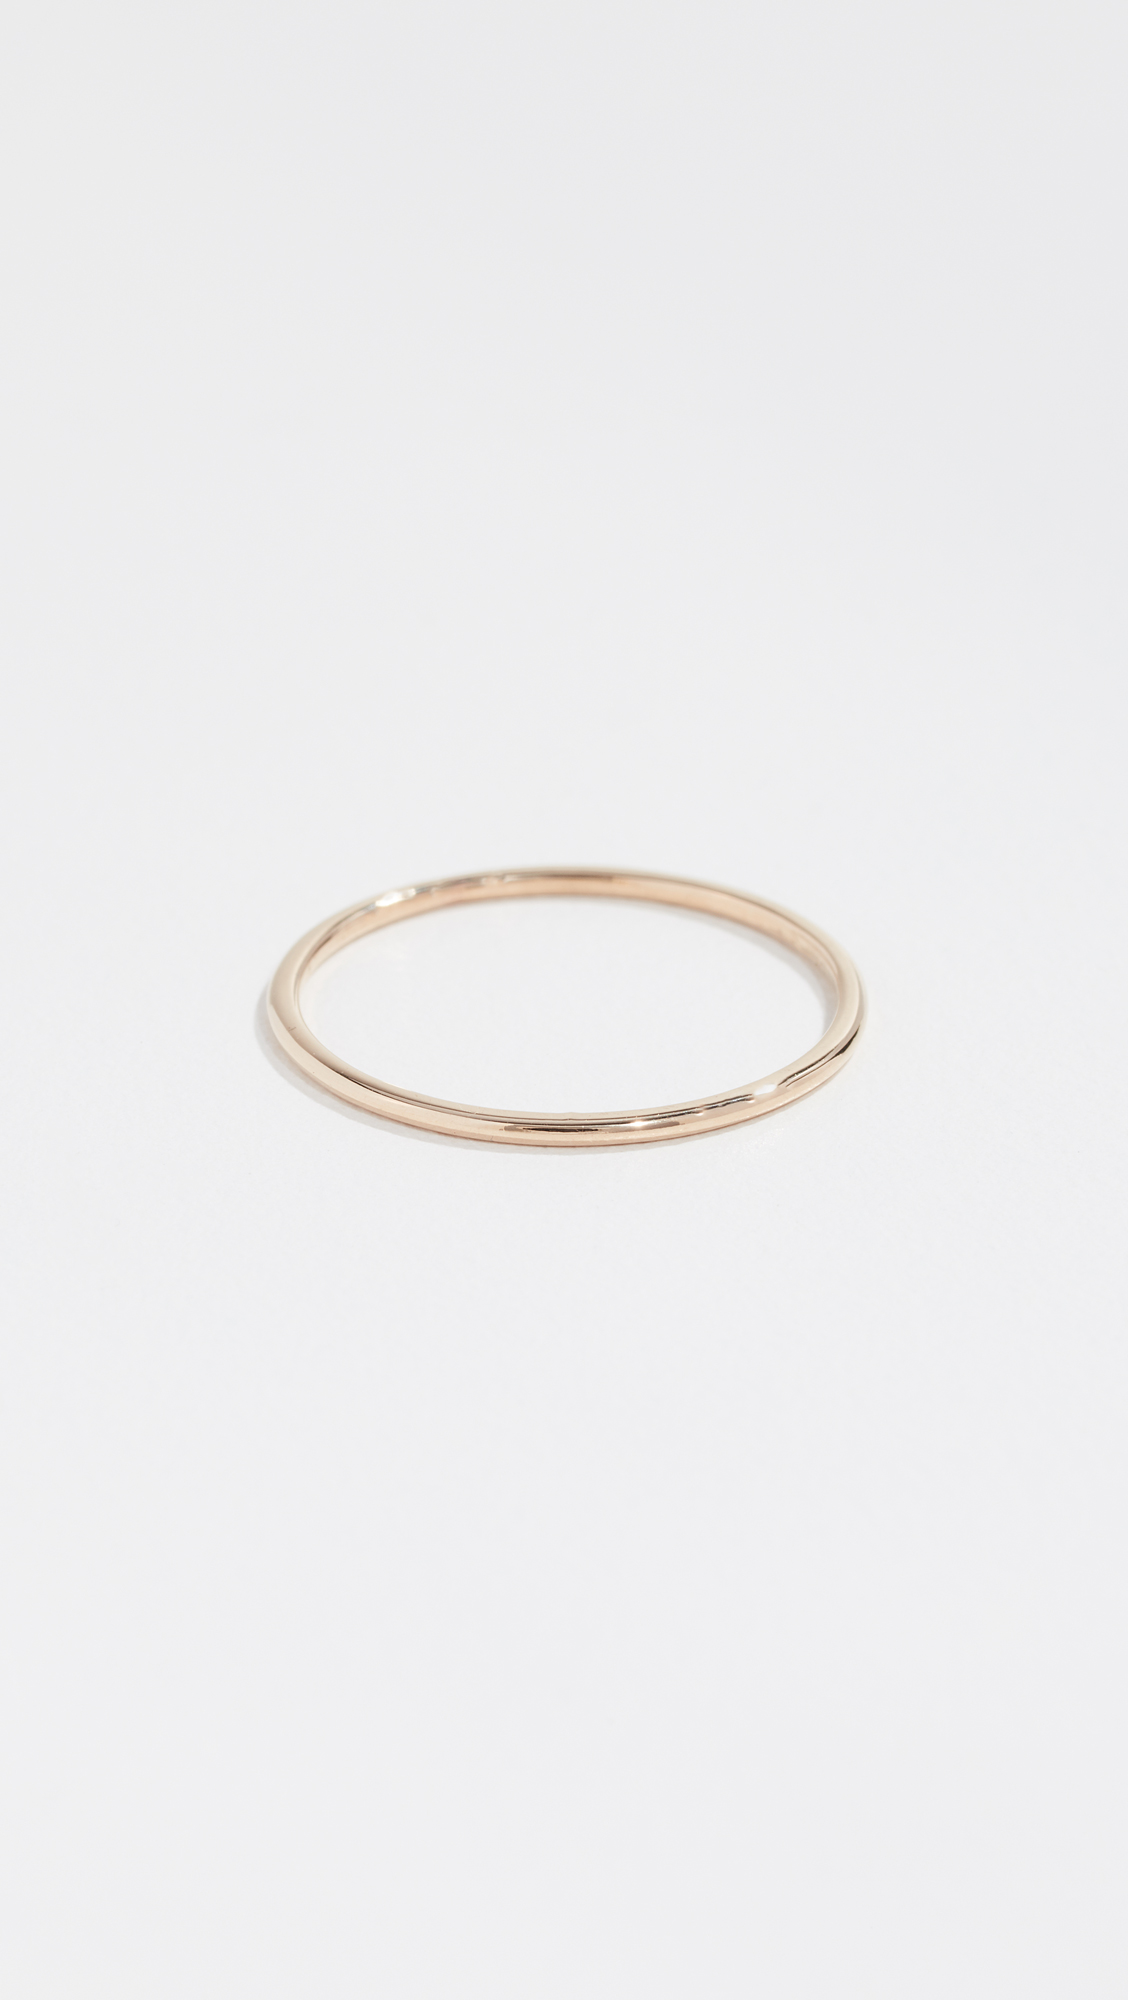 Zoe Chicco Yellow Gold Ring